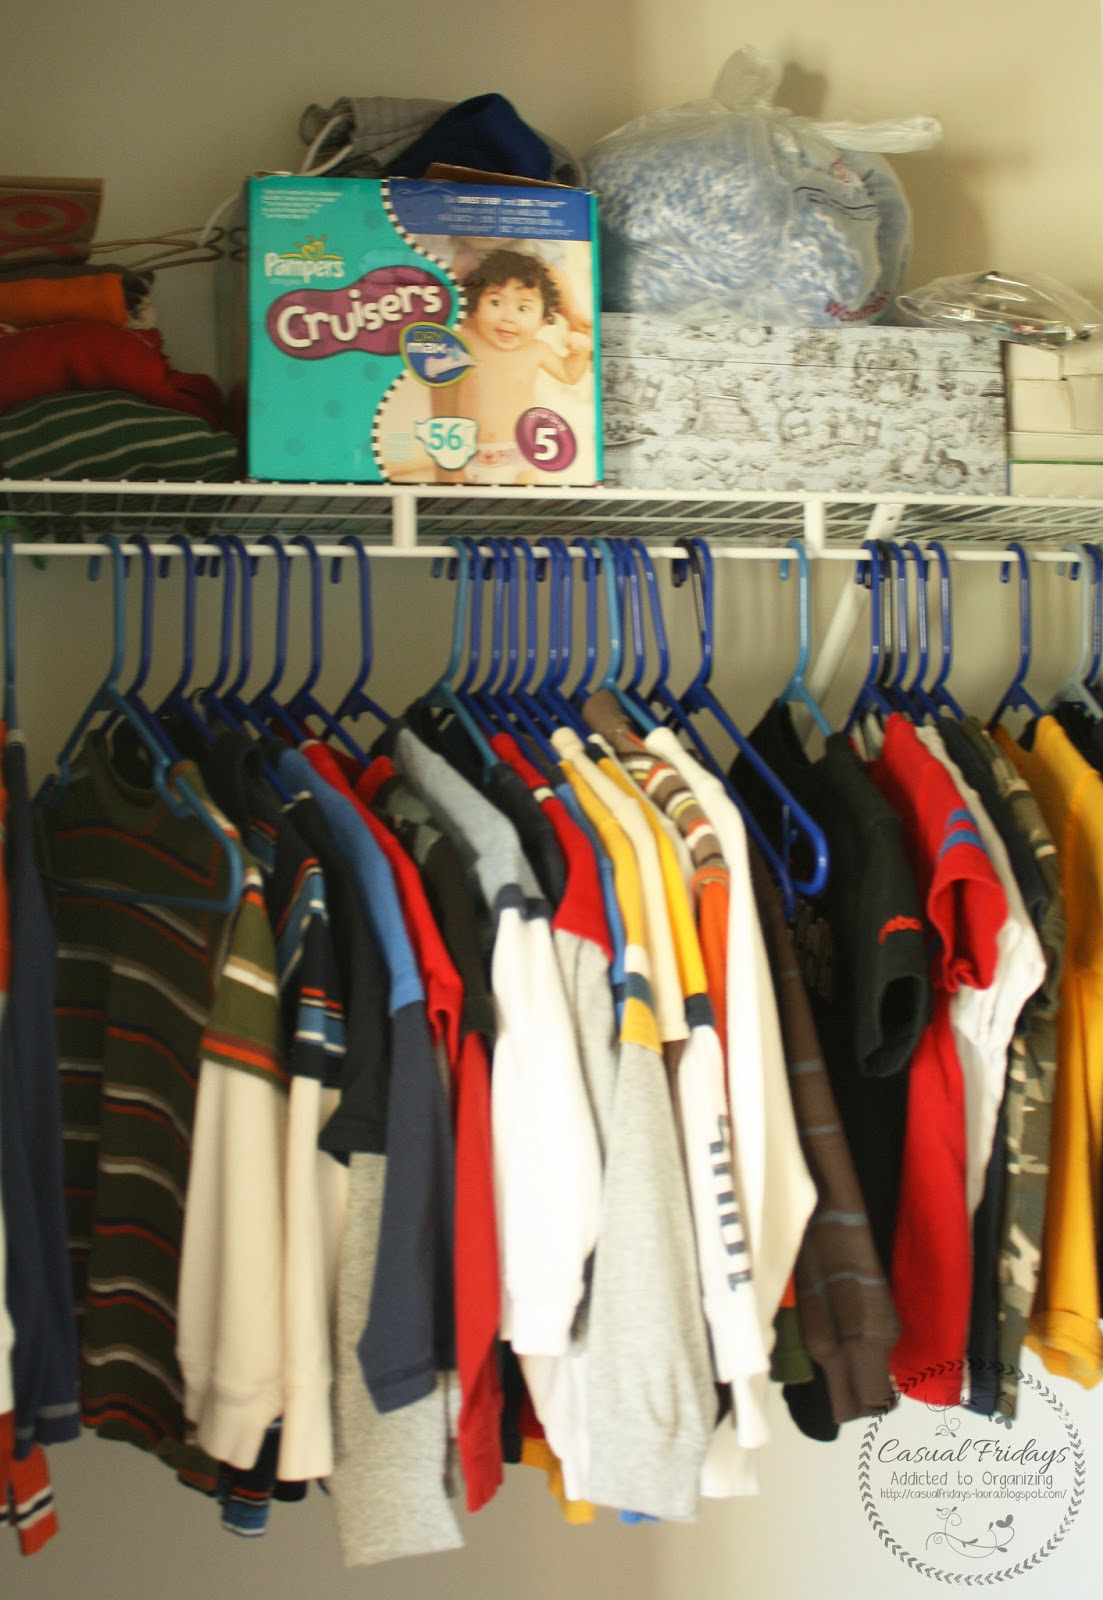 Casual Fridays: Organizing the Boys Closet - Preview